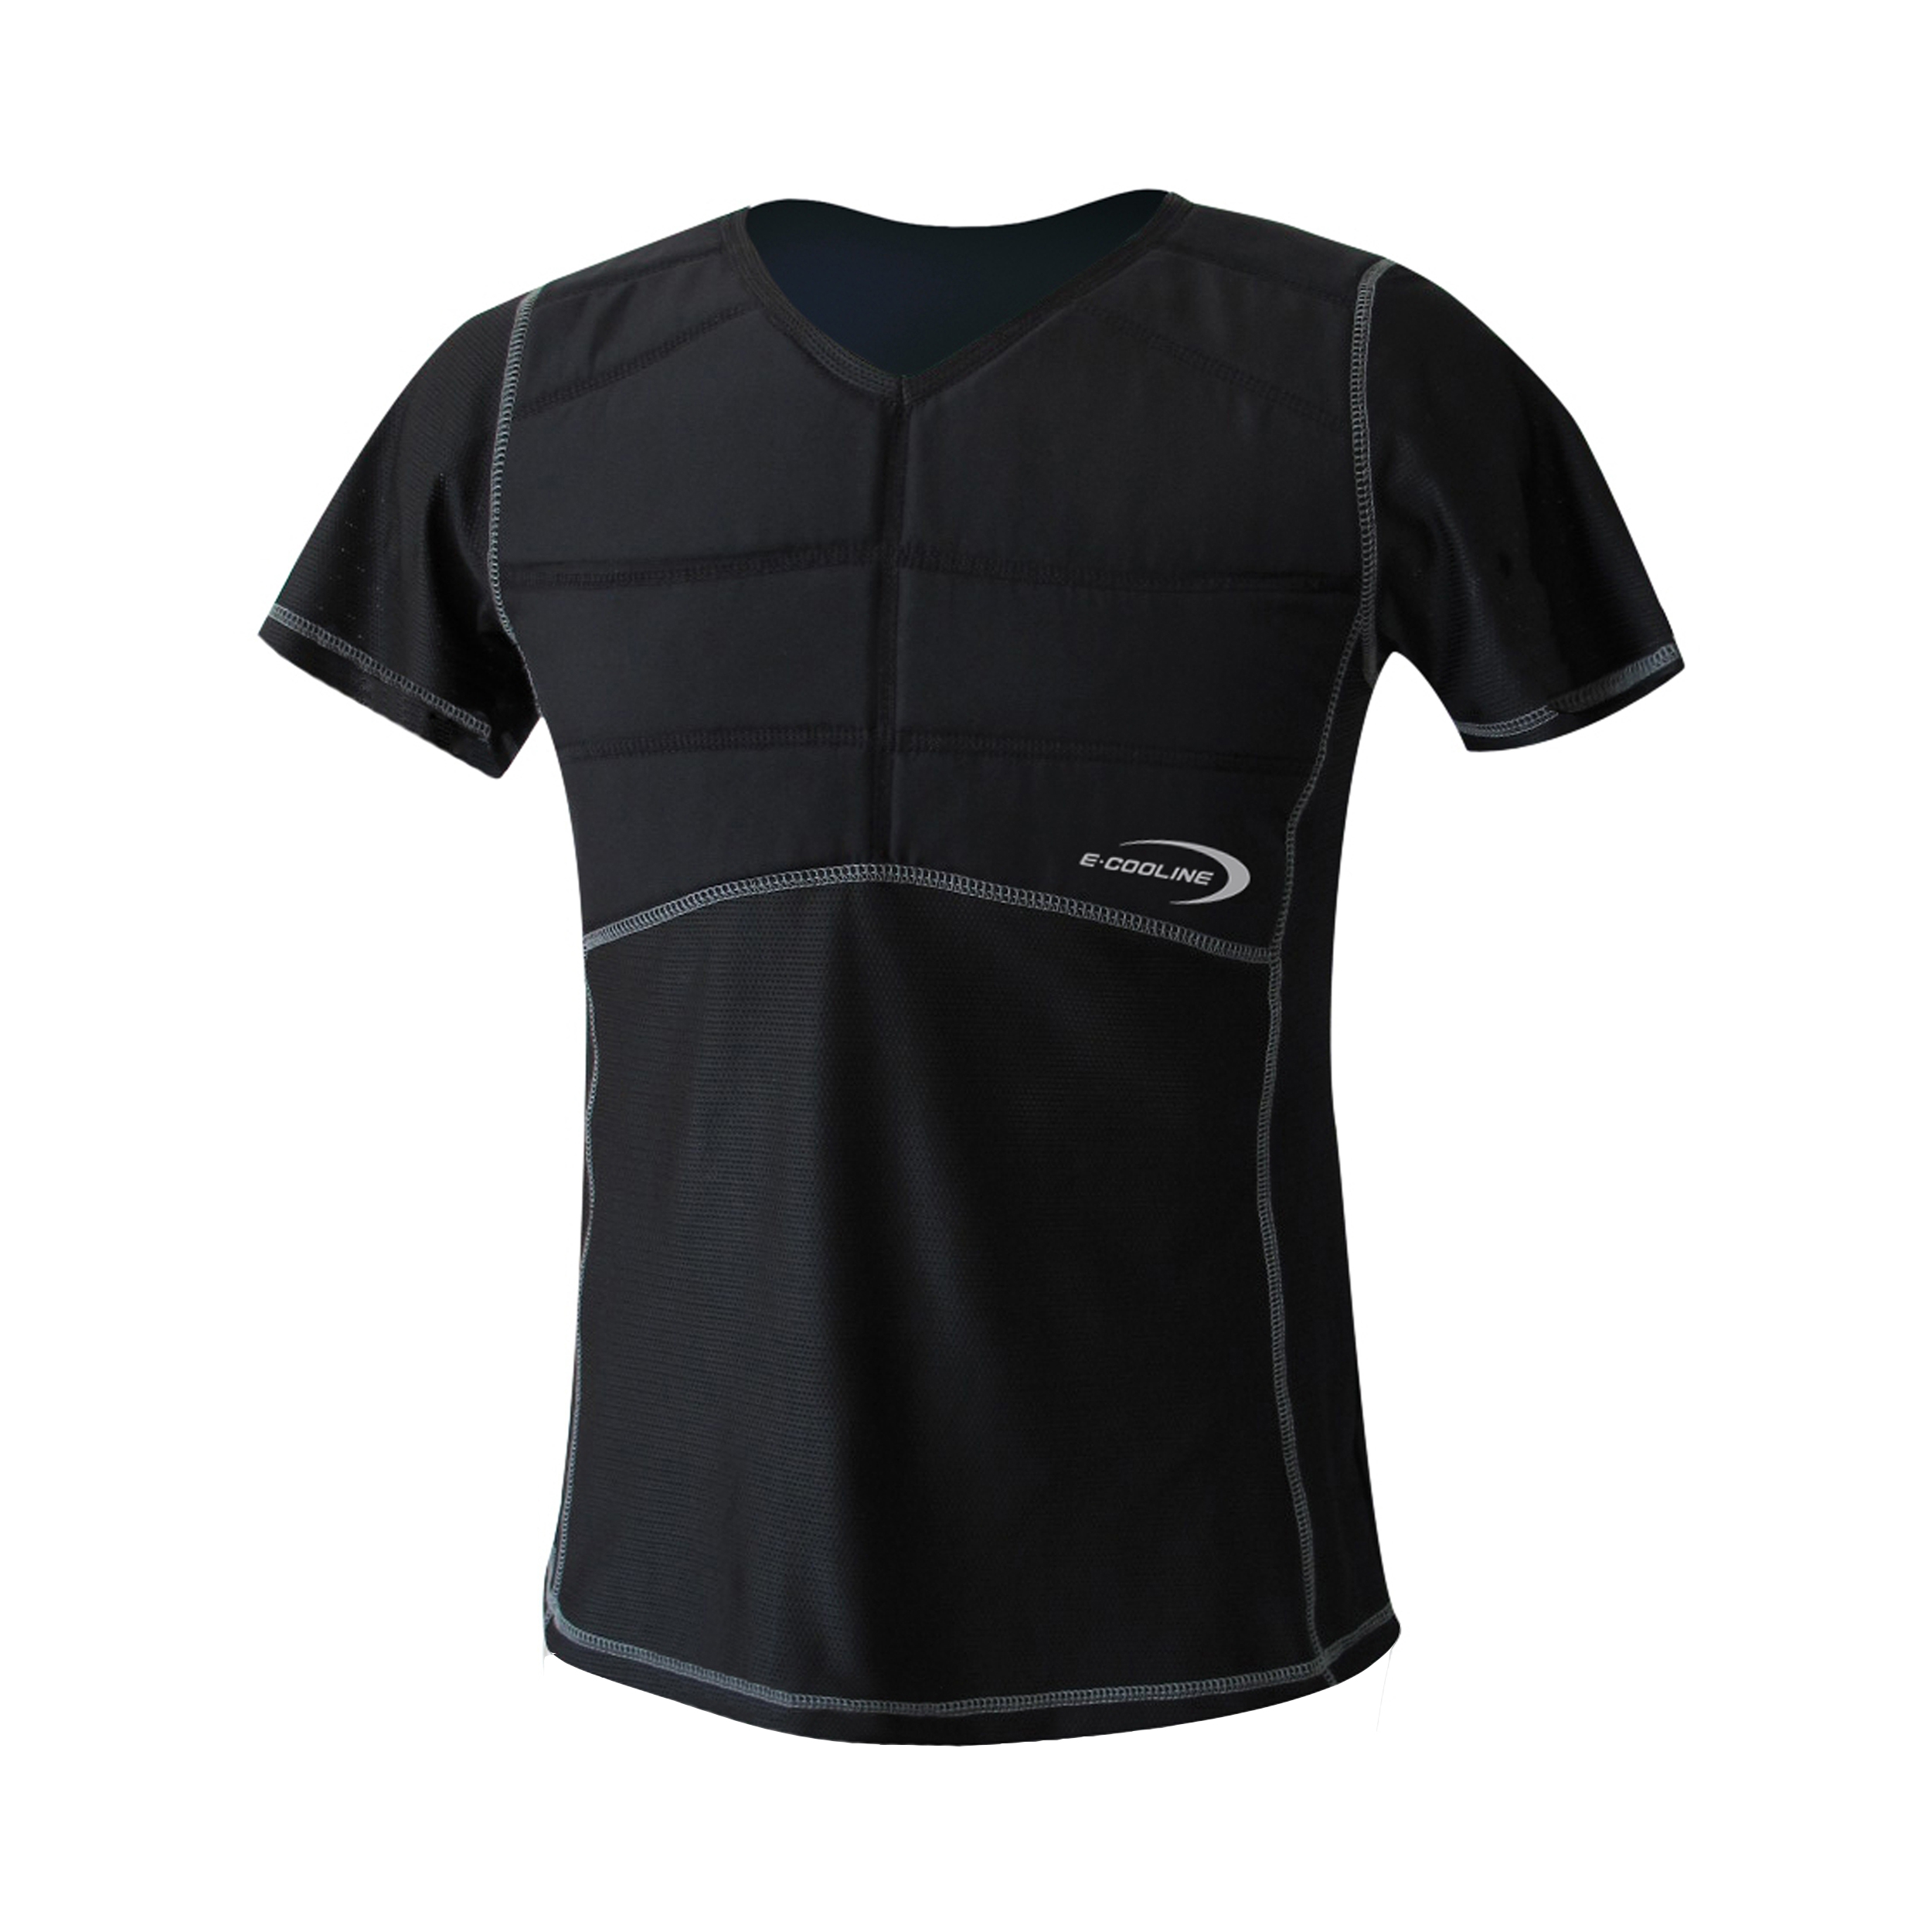 ecooline Powercool-SX3-cooling T-Shirt for your health